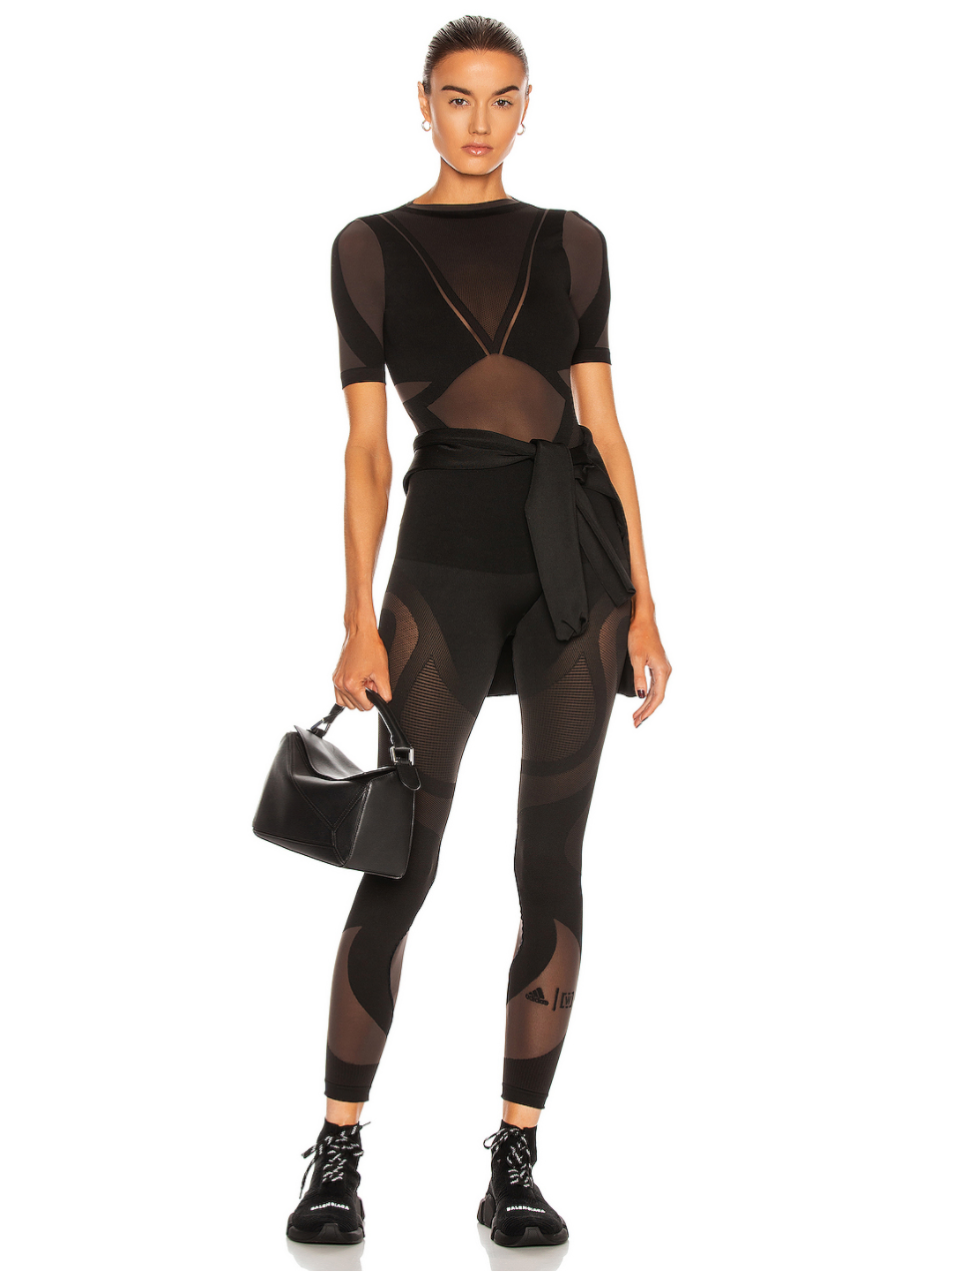 model wearing sheer motion bodysuit and matching leggings by Wolford x Adidas